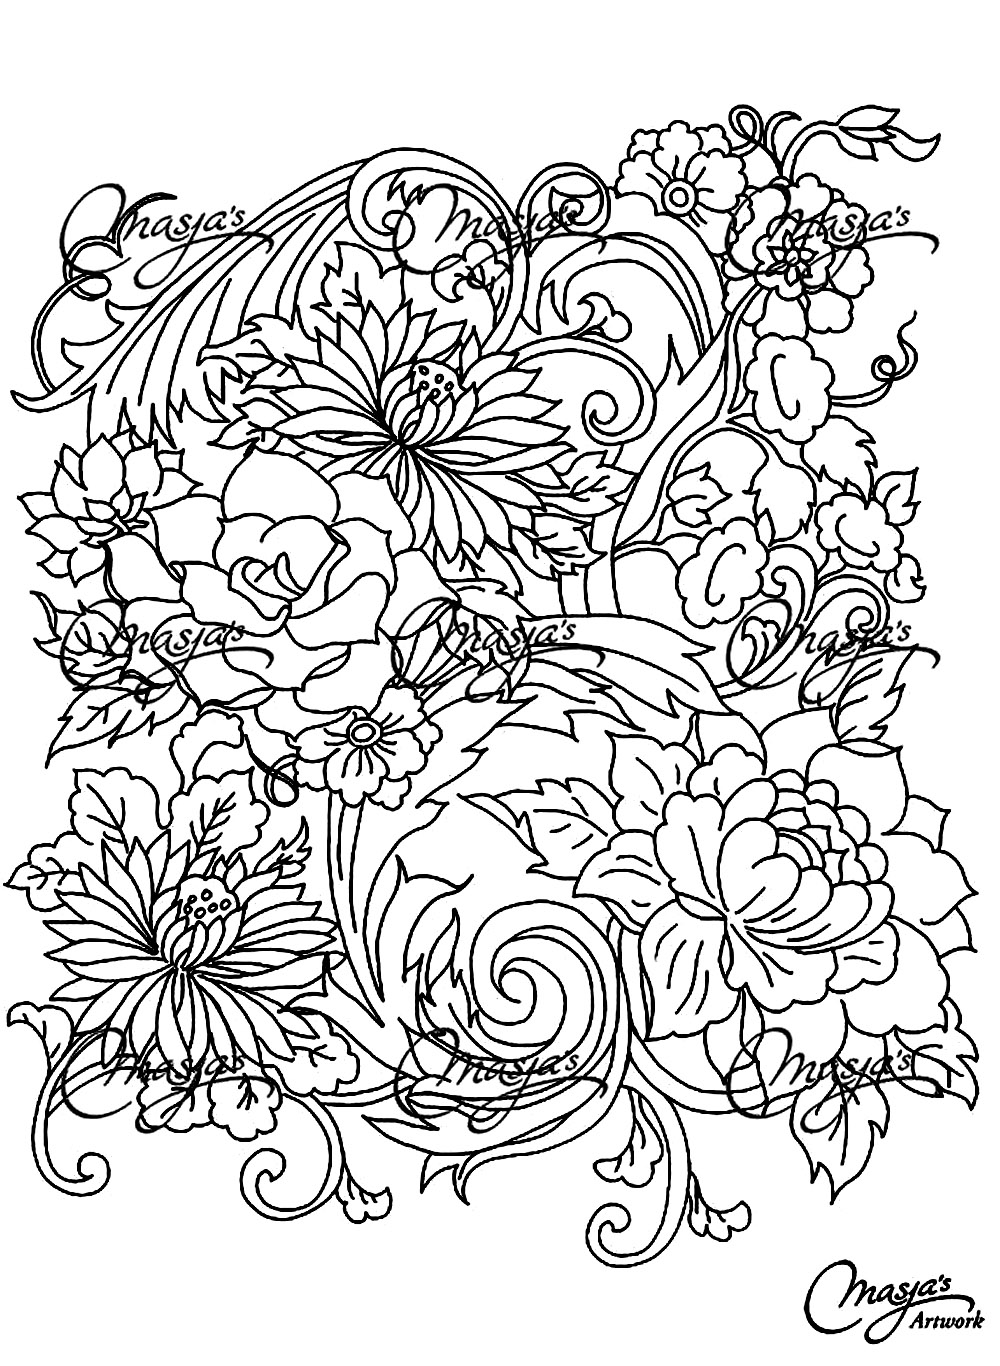 Drawing flower - Flowers Adult Coloring Pages - Page 4 | flower coloring pages for adults